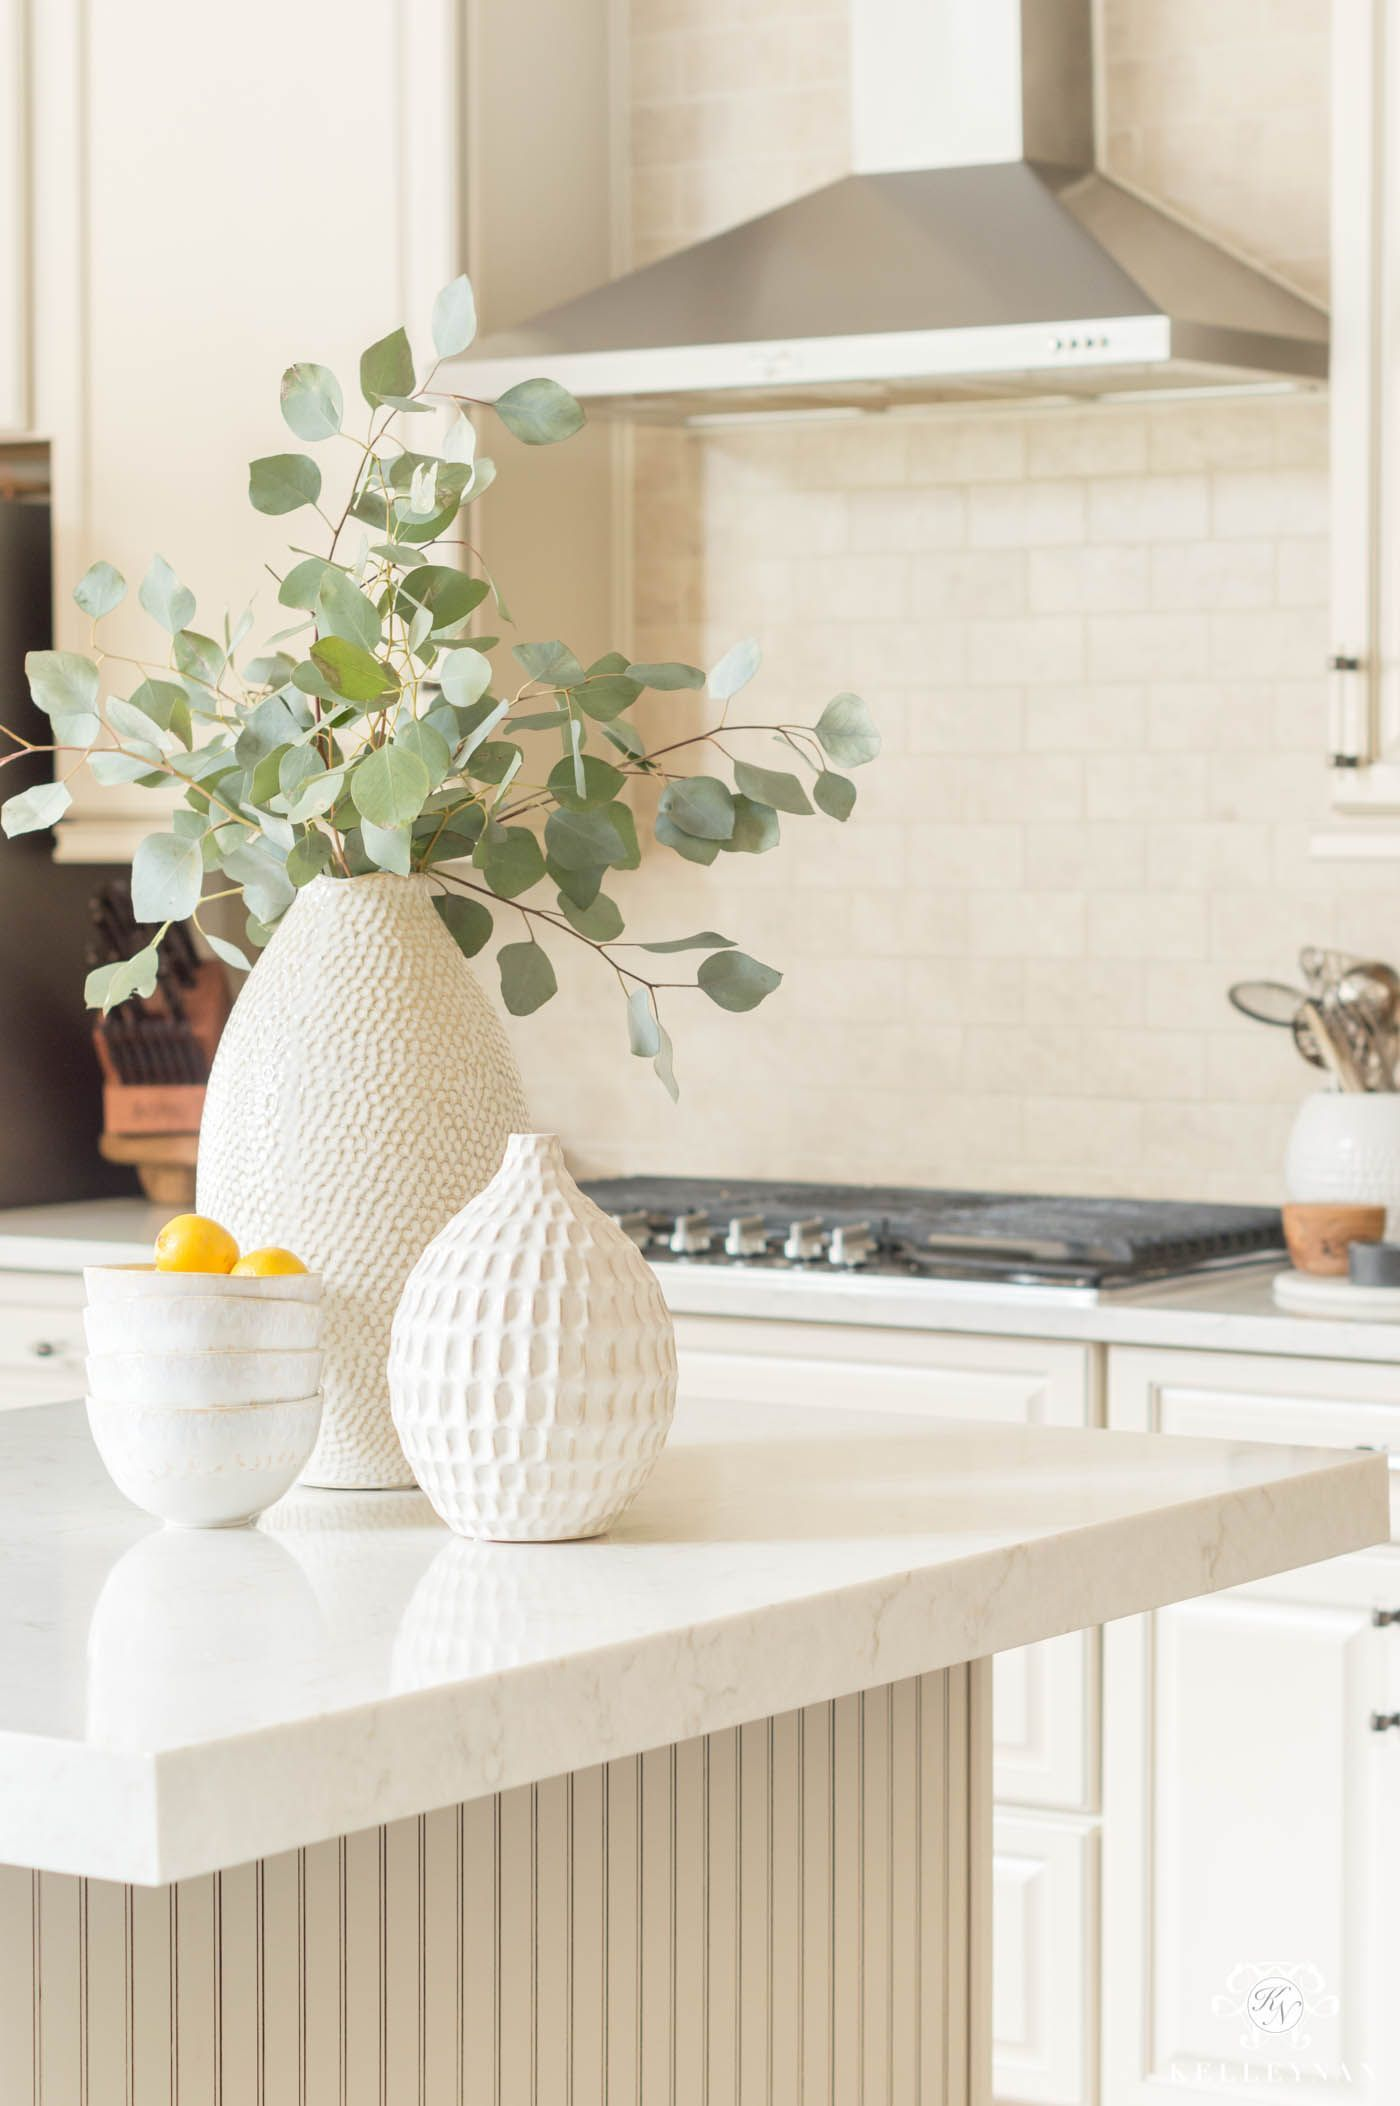 Kitchen island decor and clusters of vases. #floral #kitchendecor